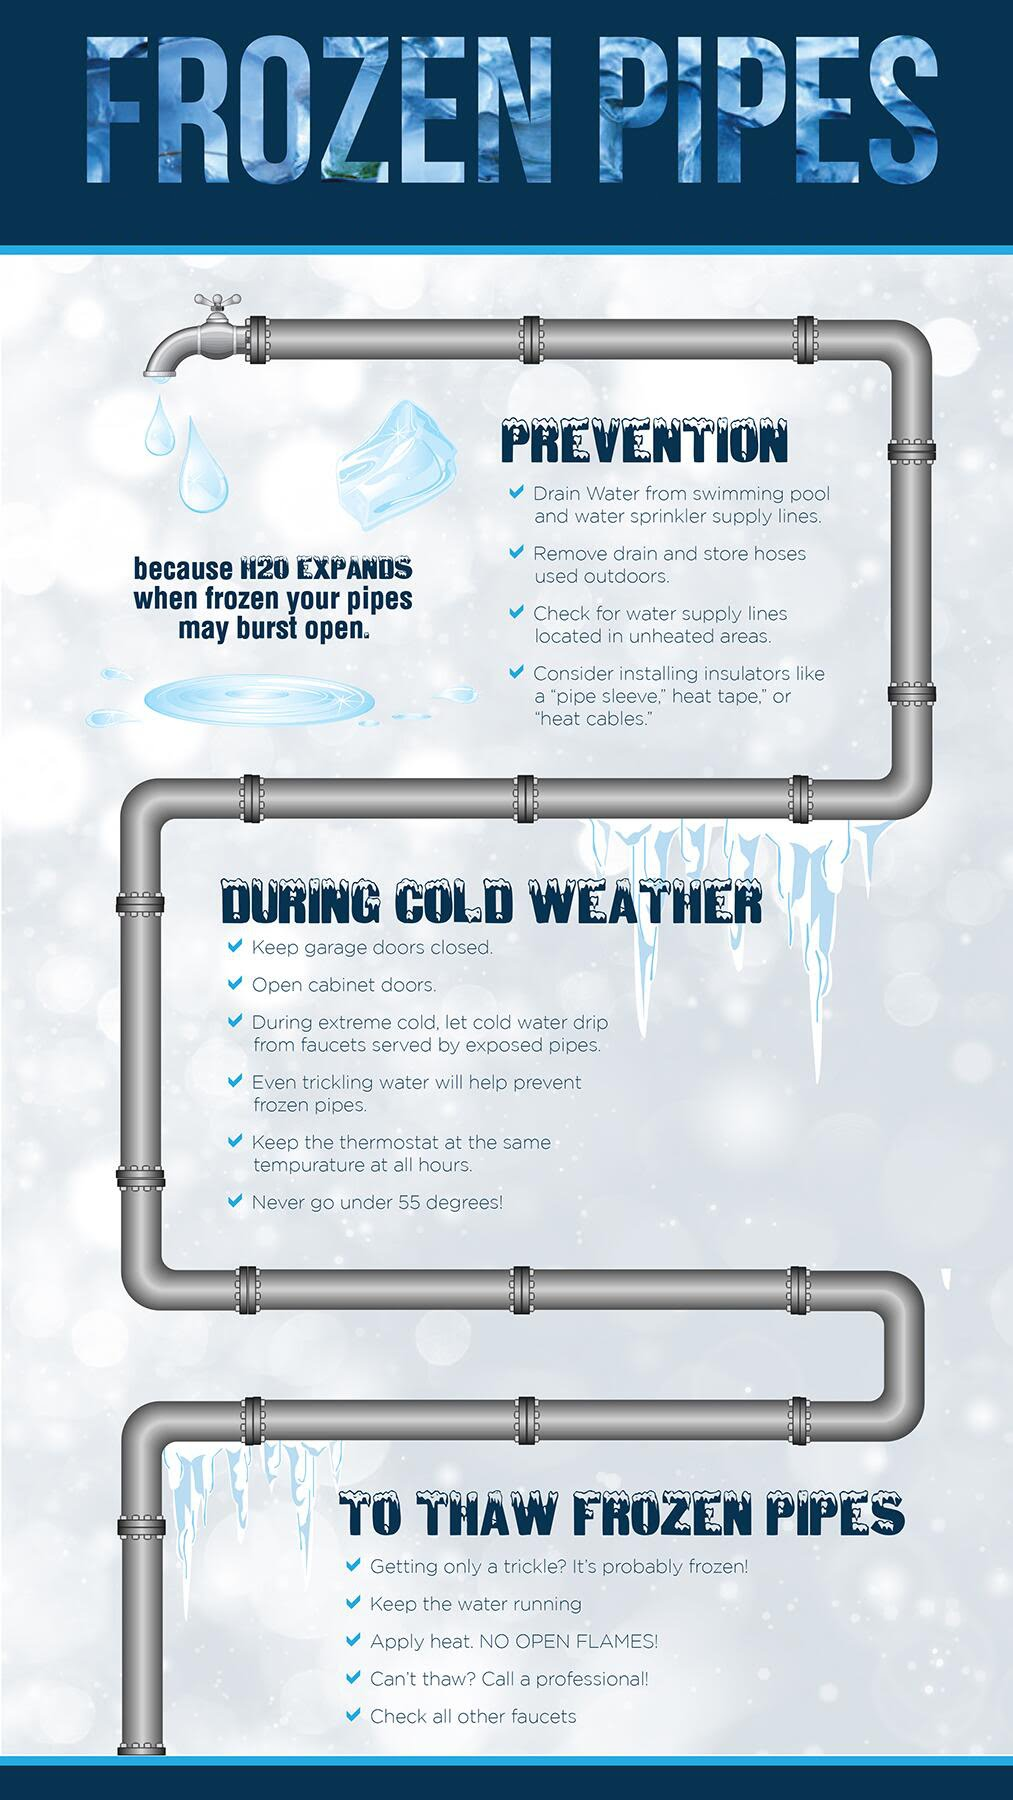 Take Precautions to Avoid Frozen Pipes | North Park Public Water ...